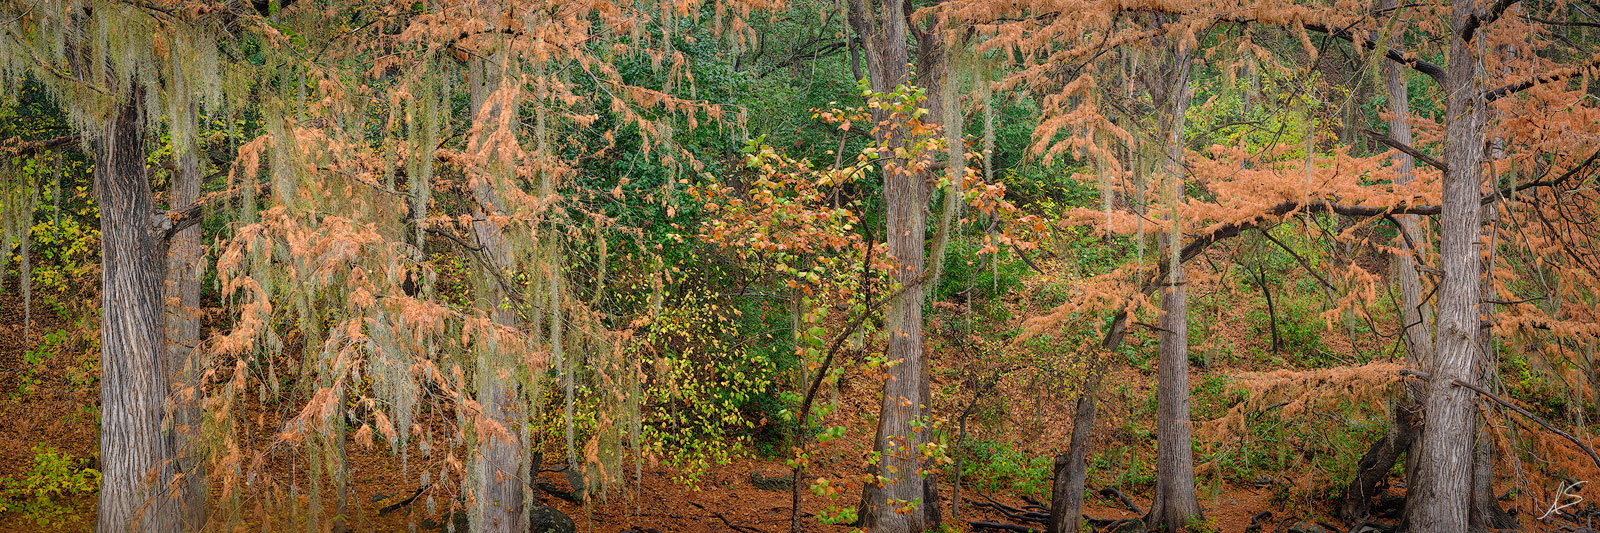 Autumn, Cypress Tree, Fall, Fuji, GFX 50R, Guadalupe River, Hill Country, Lone Star State, Pano, Panorama, Panoramic, TX, Texas, Texas Landscapes, Trees, photo